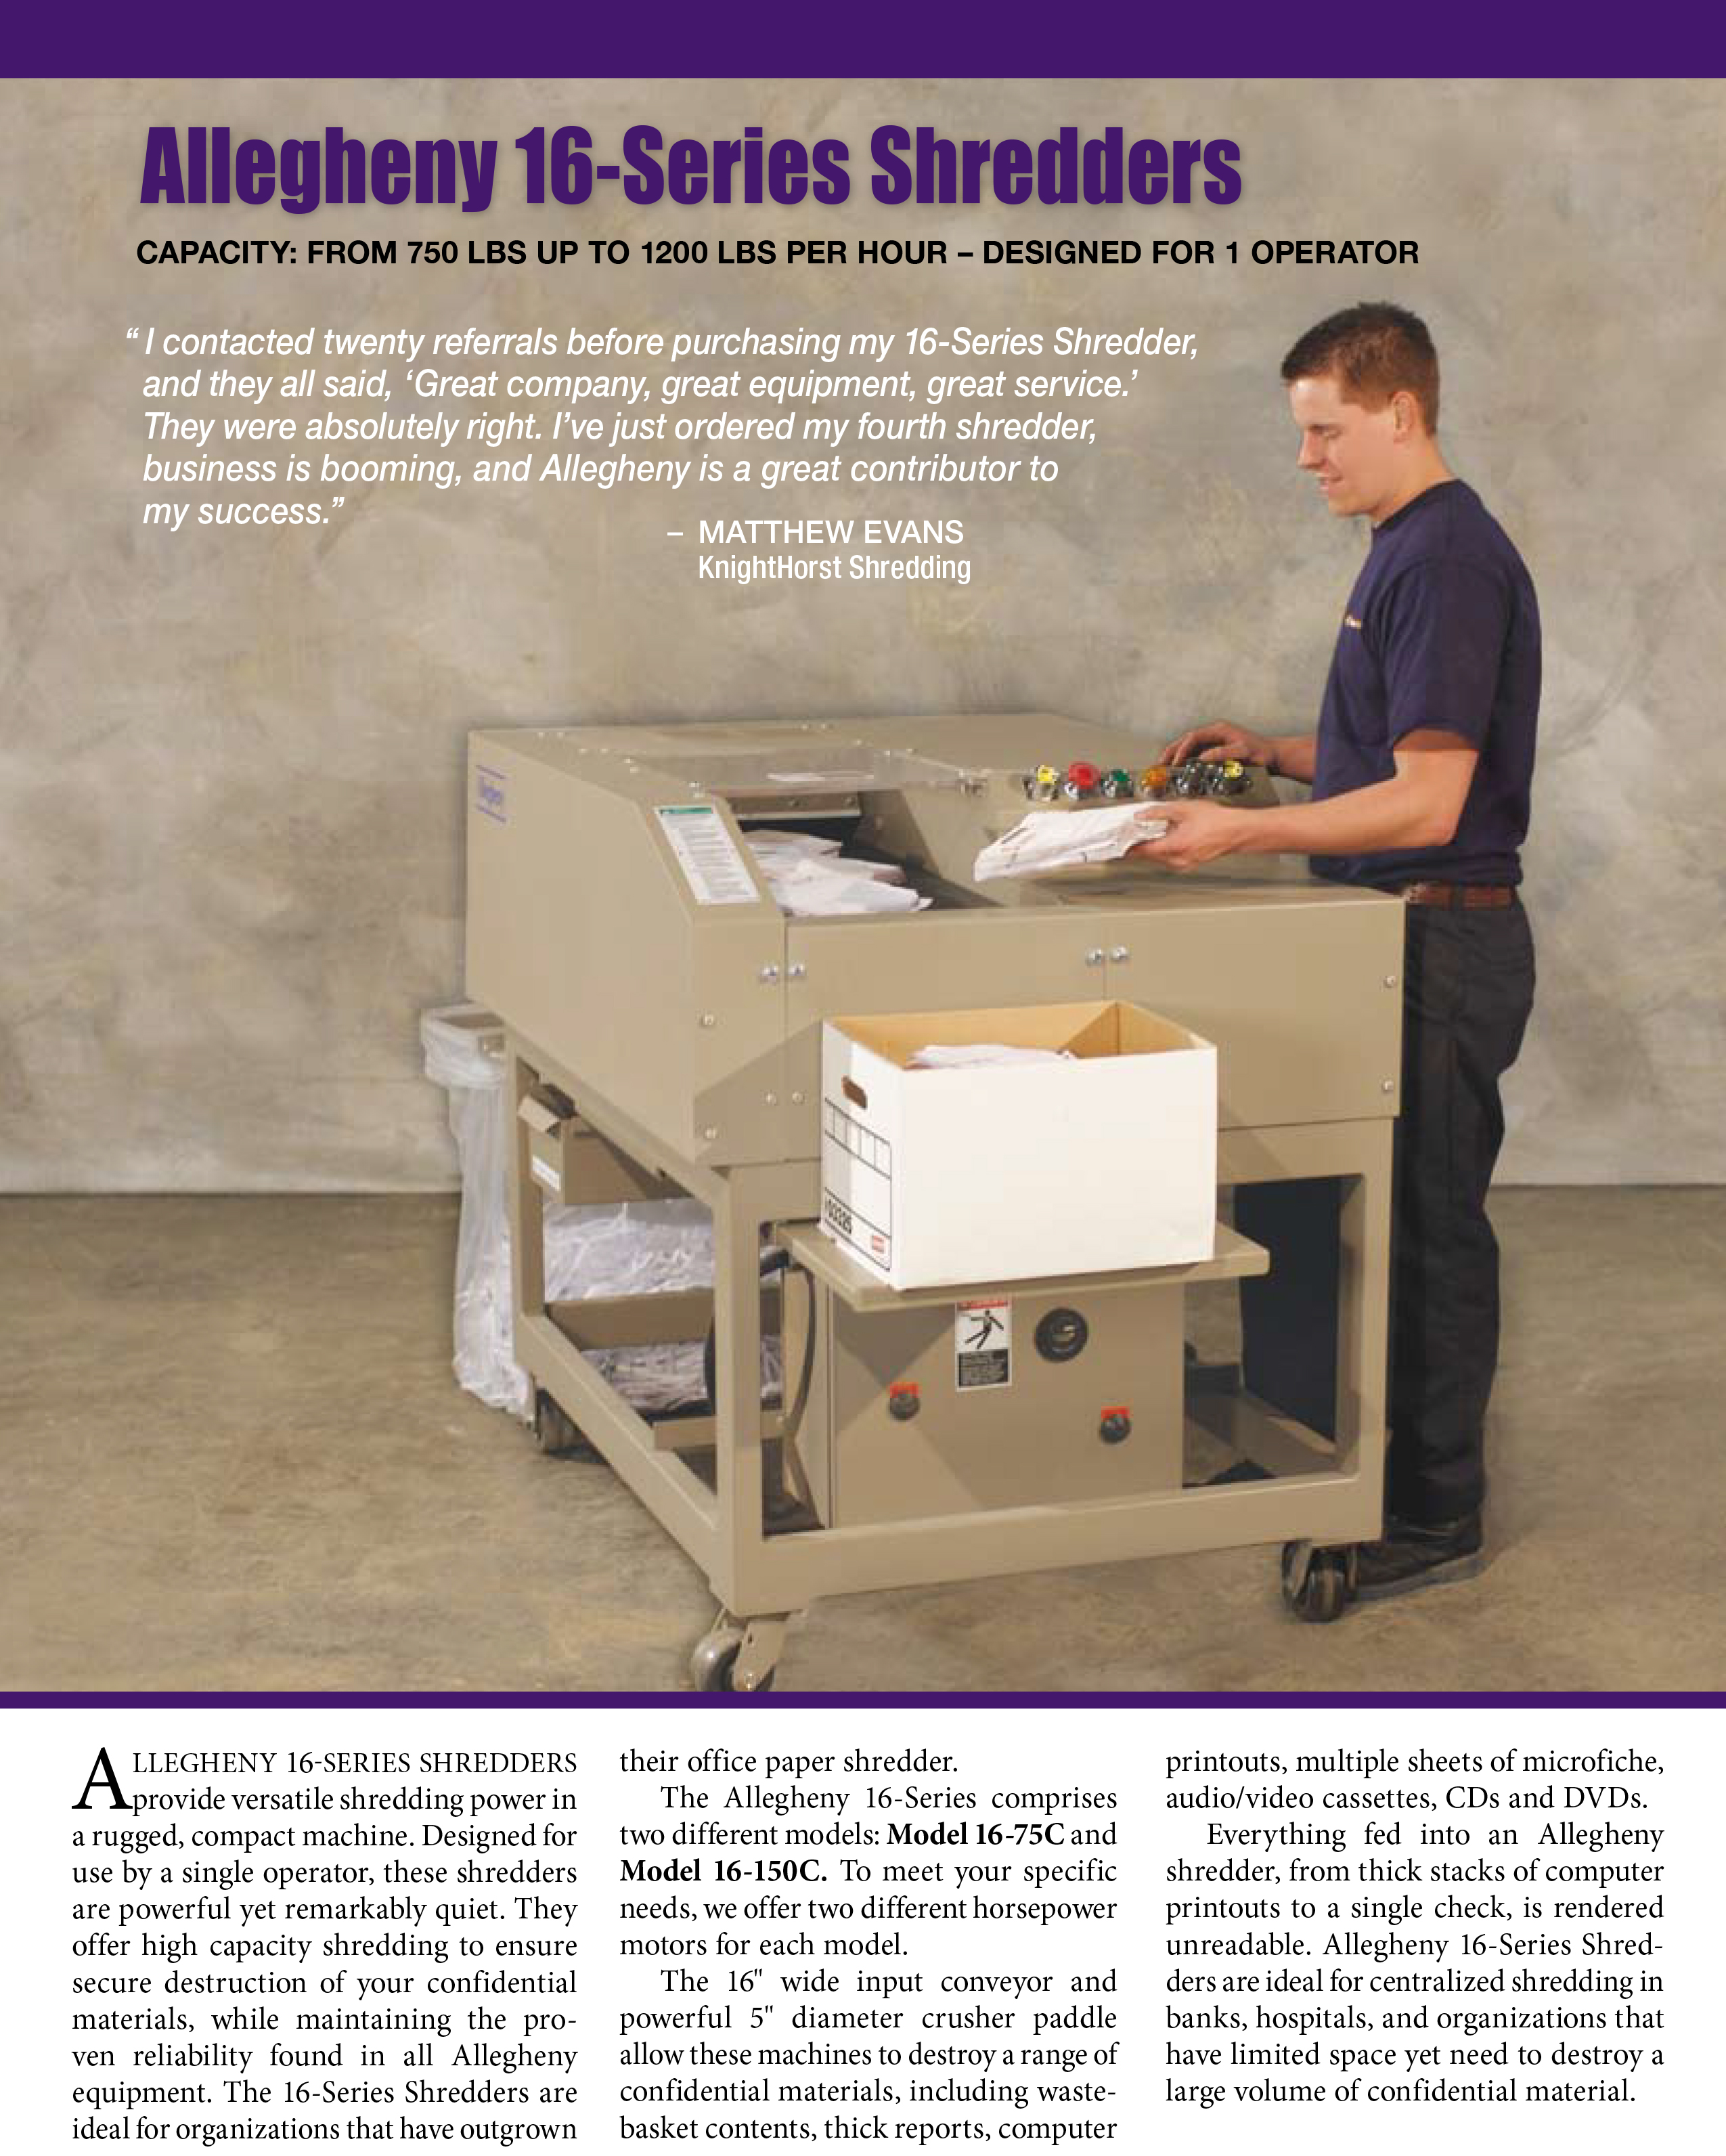 Learn more about the 16-Series Strip-Cut Shredders in the Allegheny Brochure.